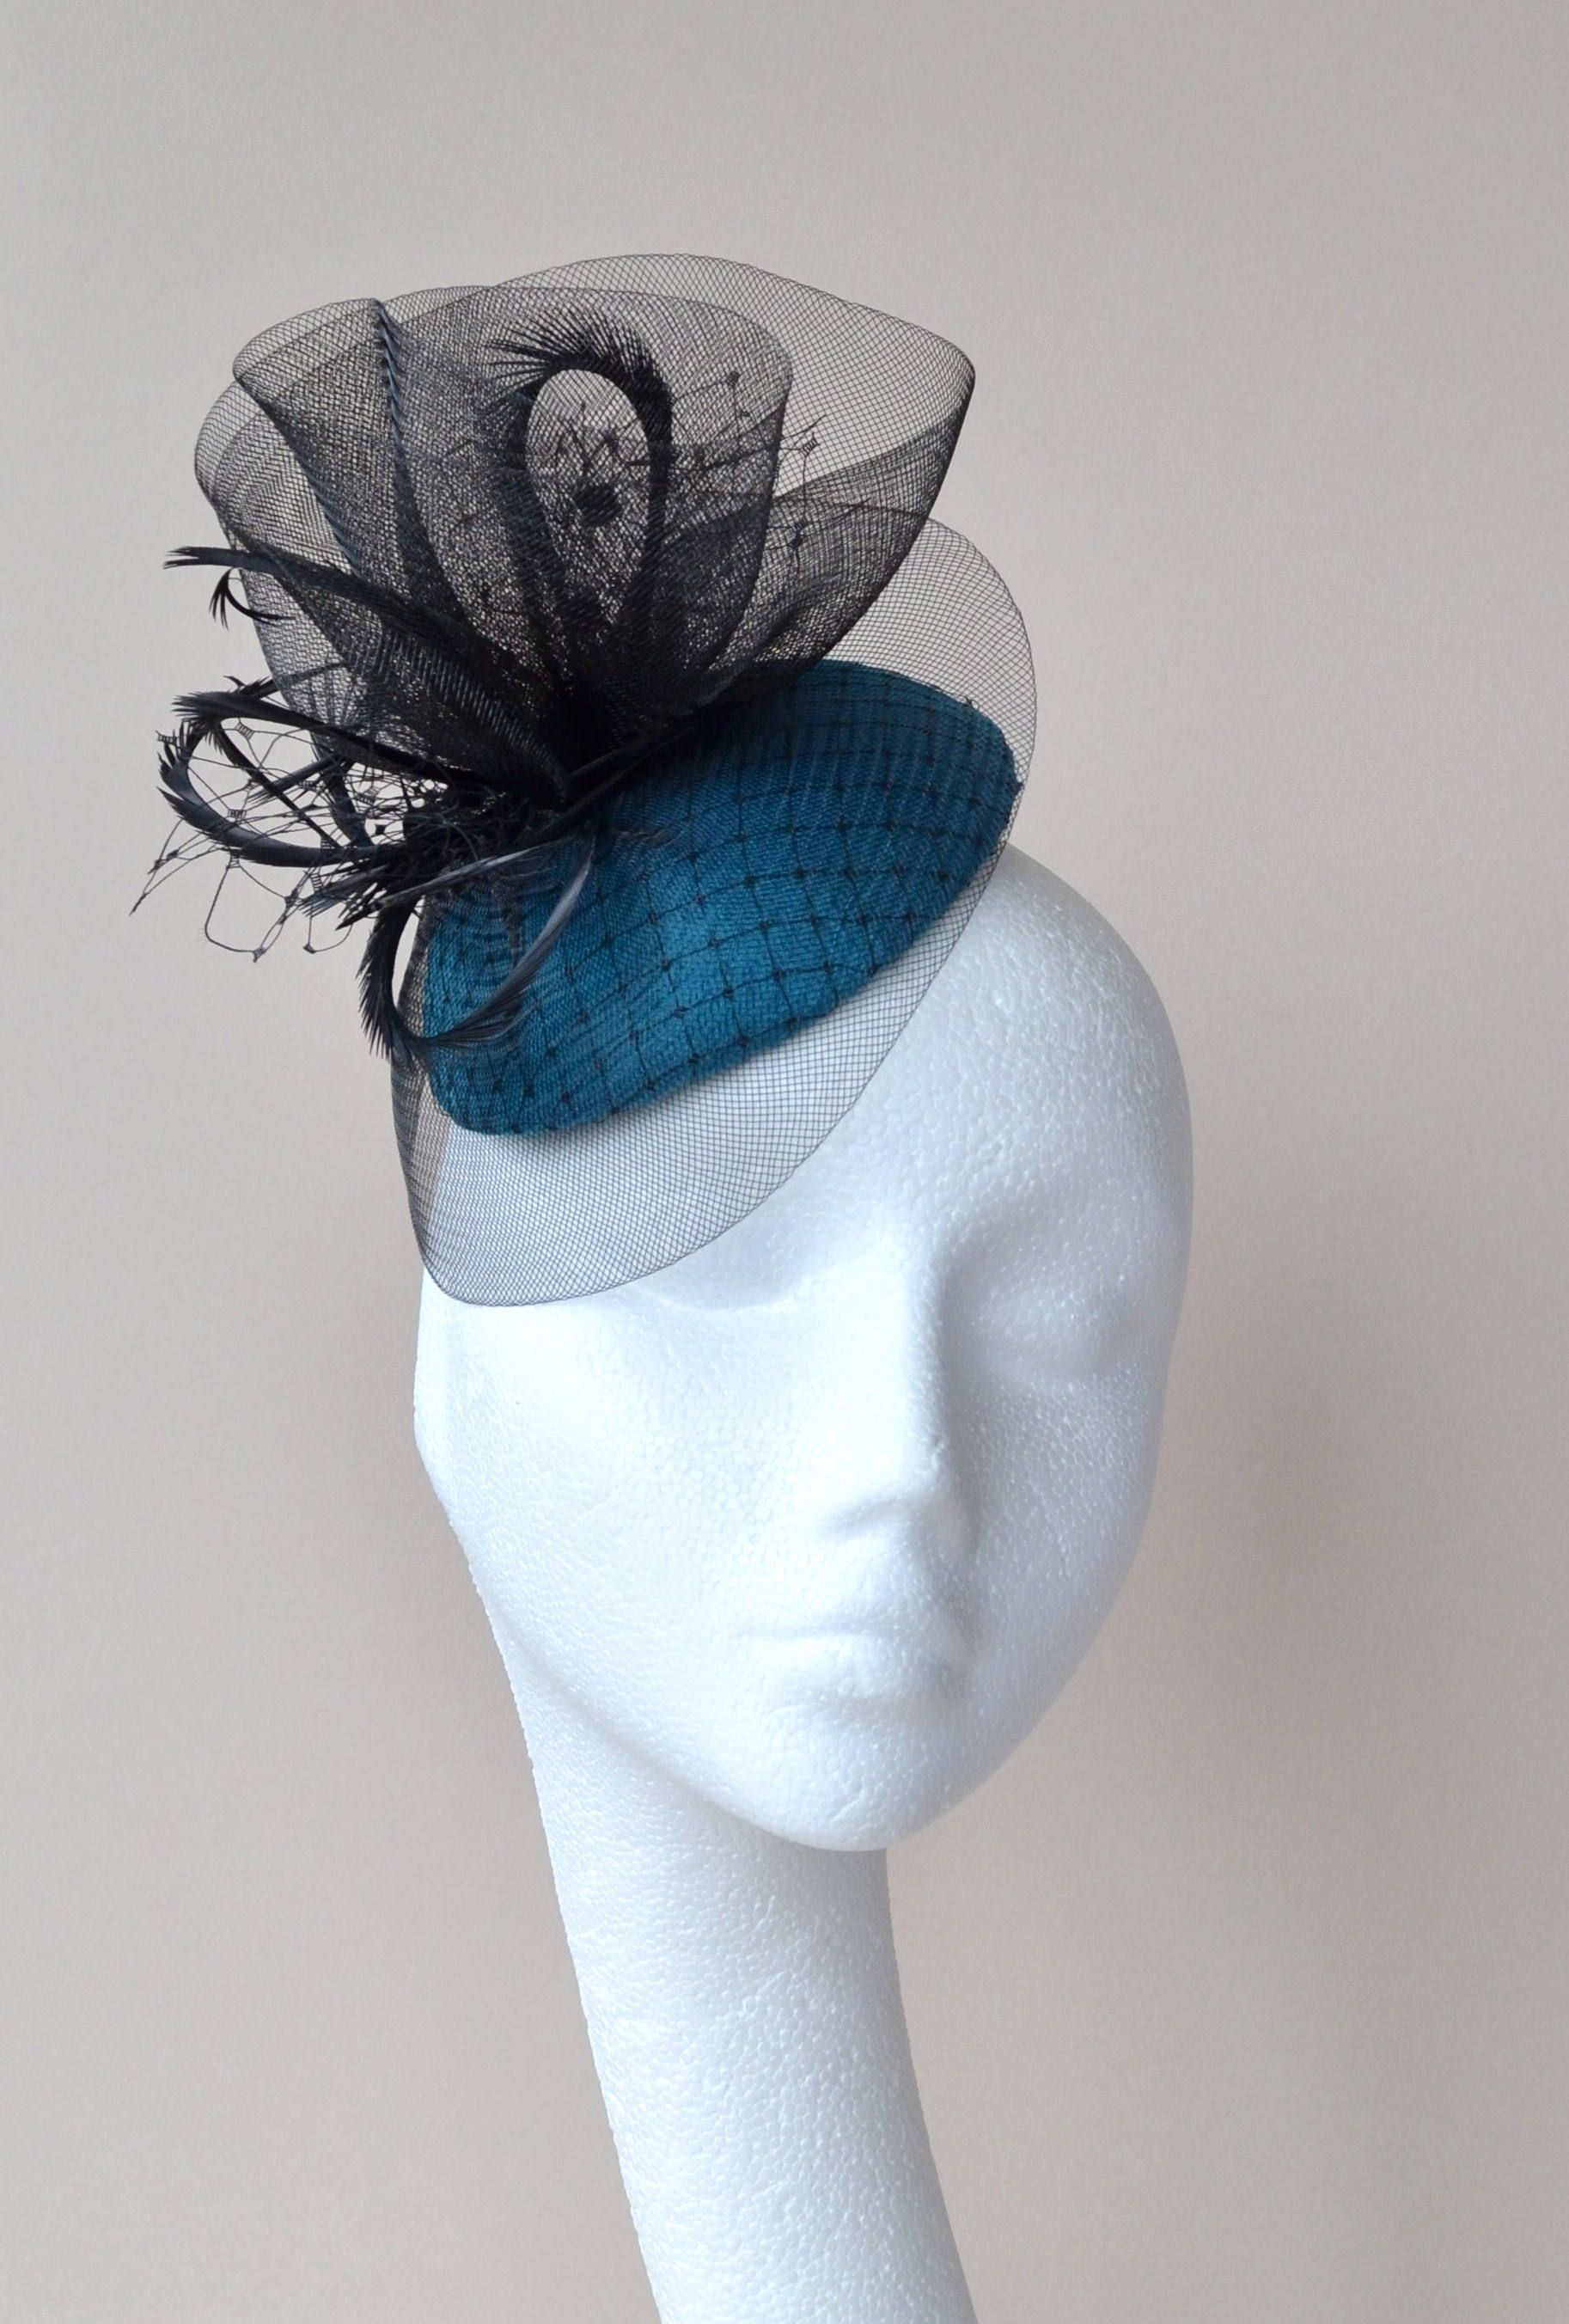 793d91a1b6f4a Teal and black wedding hat. Ascot hat. Derby hat. Cocktail hat. Percher hat.  Small blue hat. Occasion hat. by jaracedesigns on Etsy